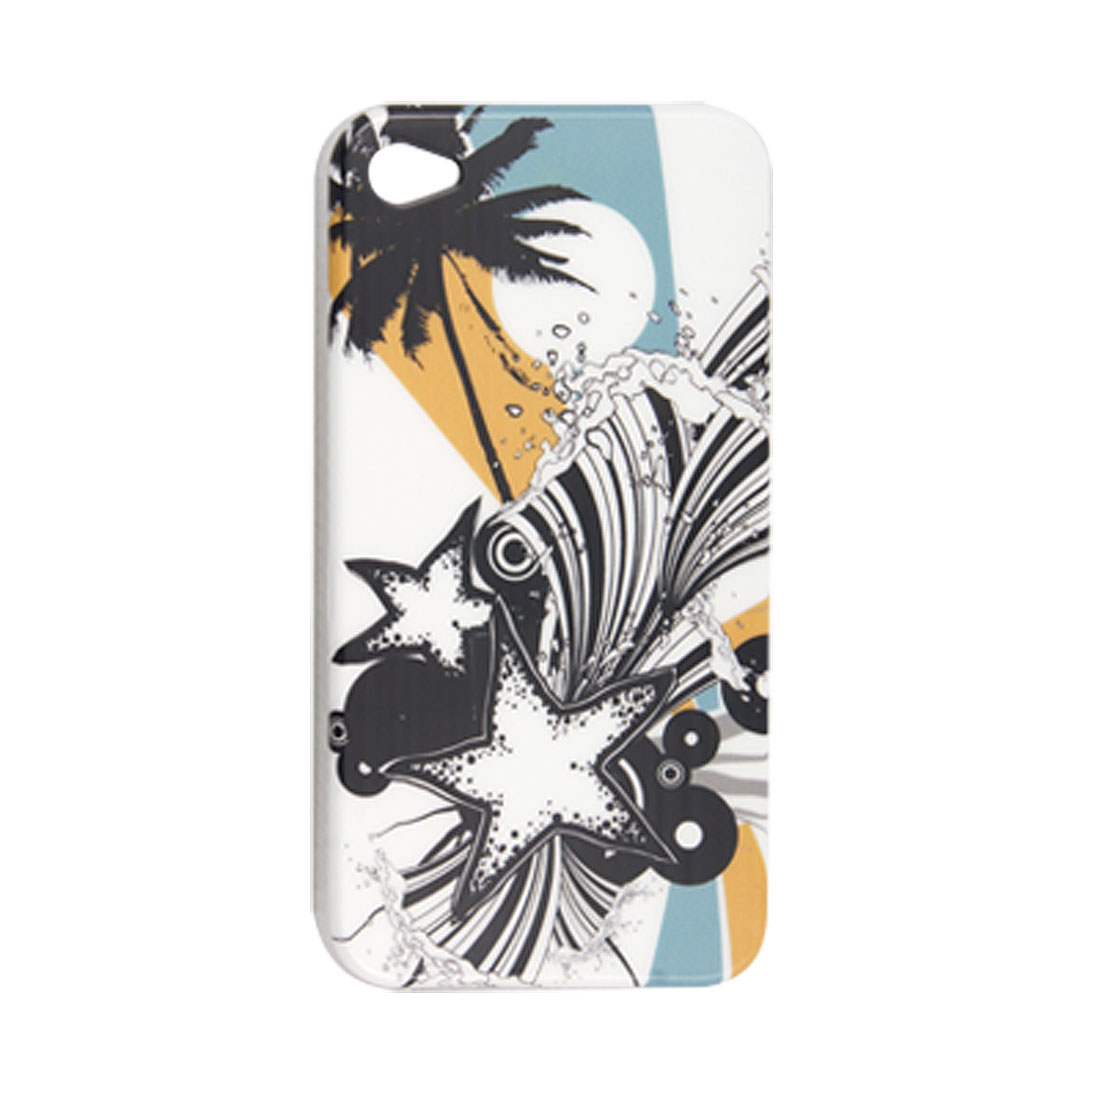 Coco Tree Hard Plastic Back Cover Shell for iPhone 4 4G